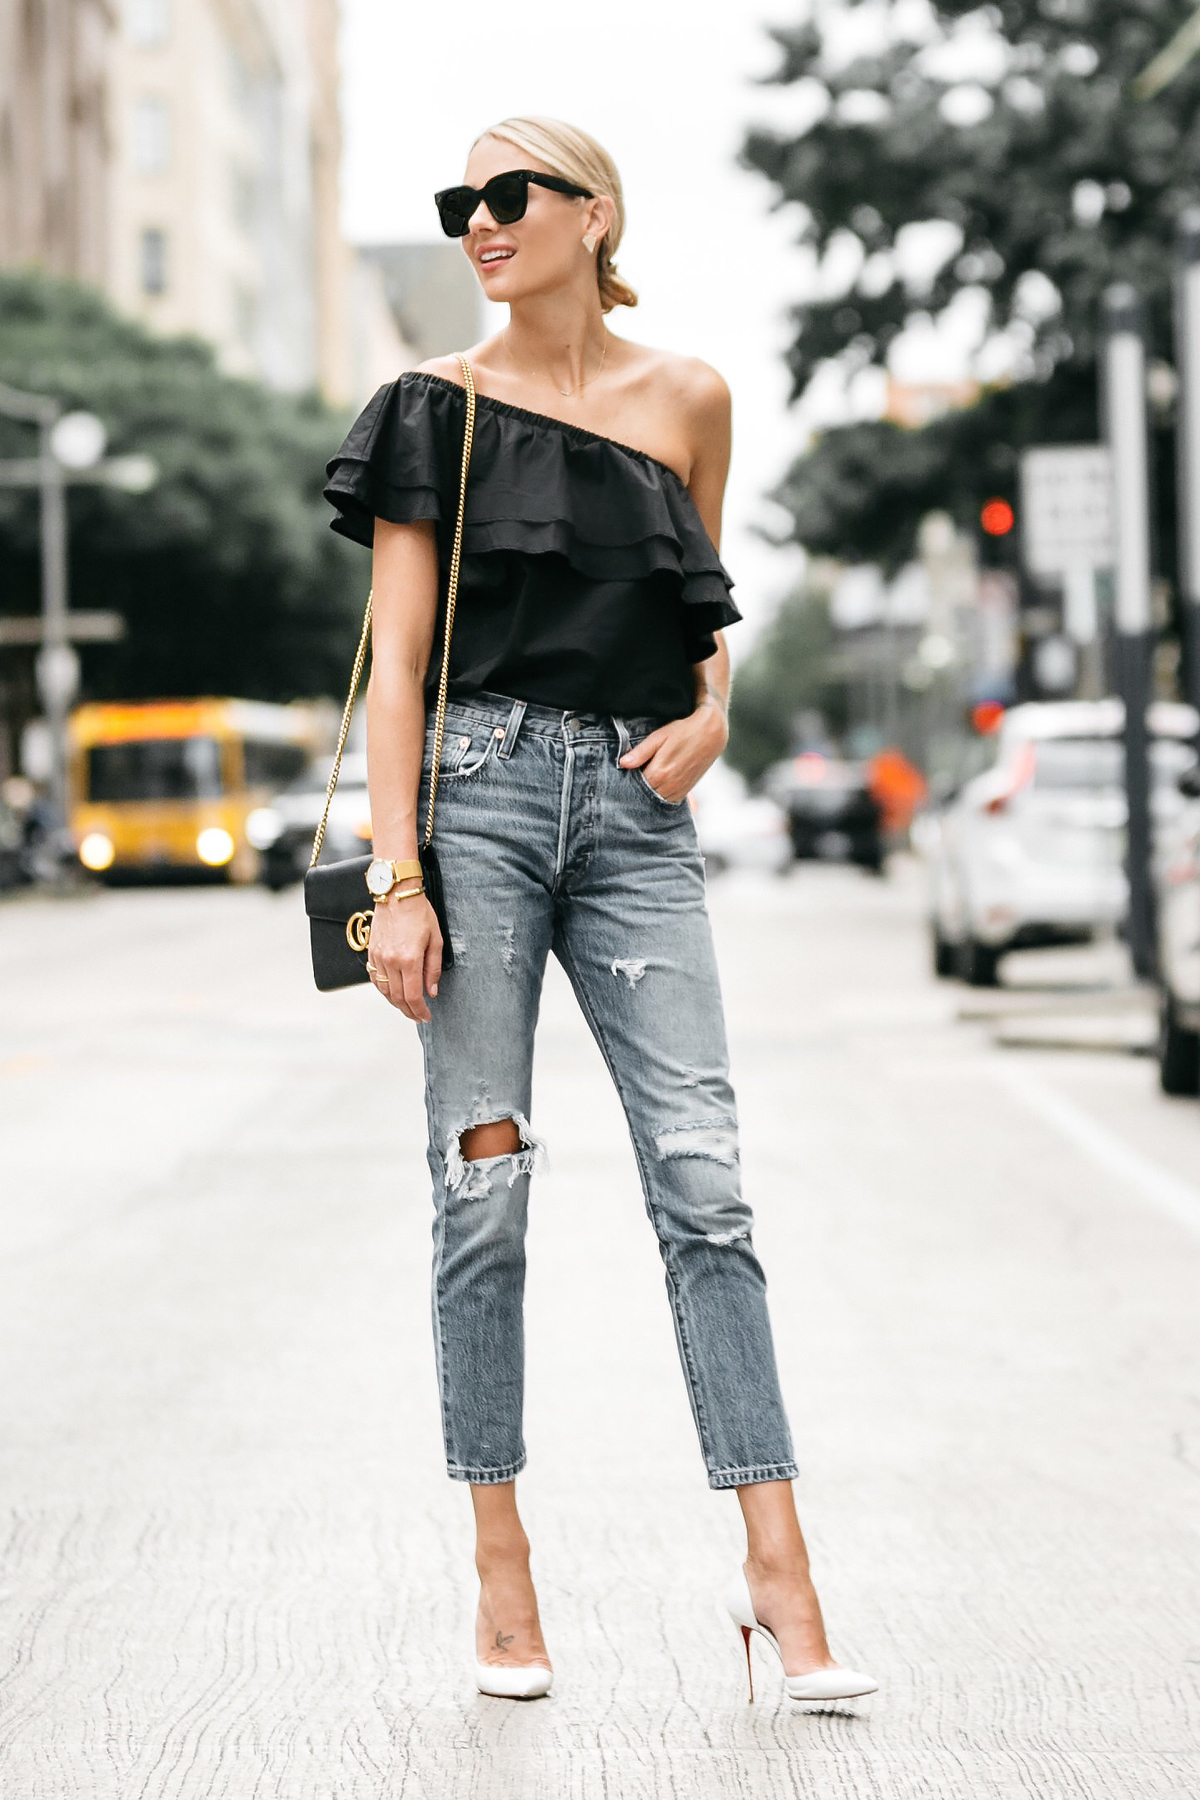 980b732498b Blonde woman wearing nordstrom black one shoulder ruffle top levis  distressed jeans christian louboutin white pumps